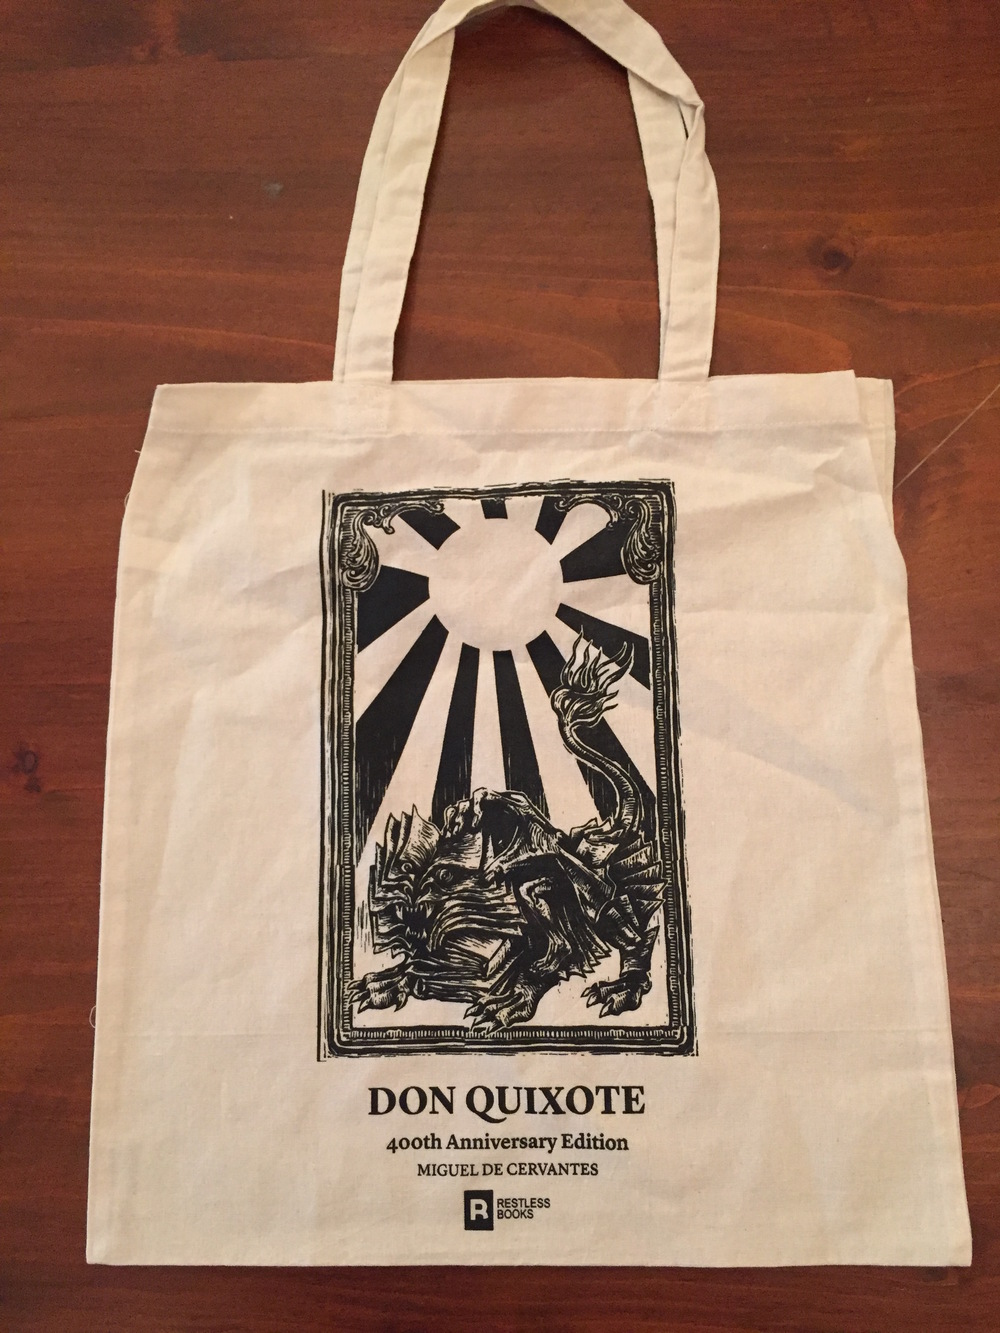 Don Quixote tote Bag - Lion.JPG